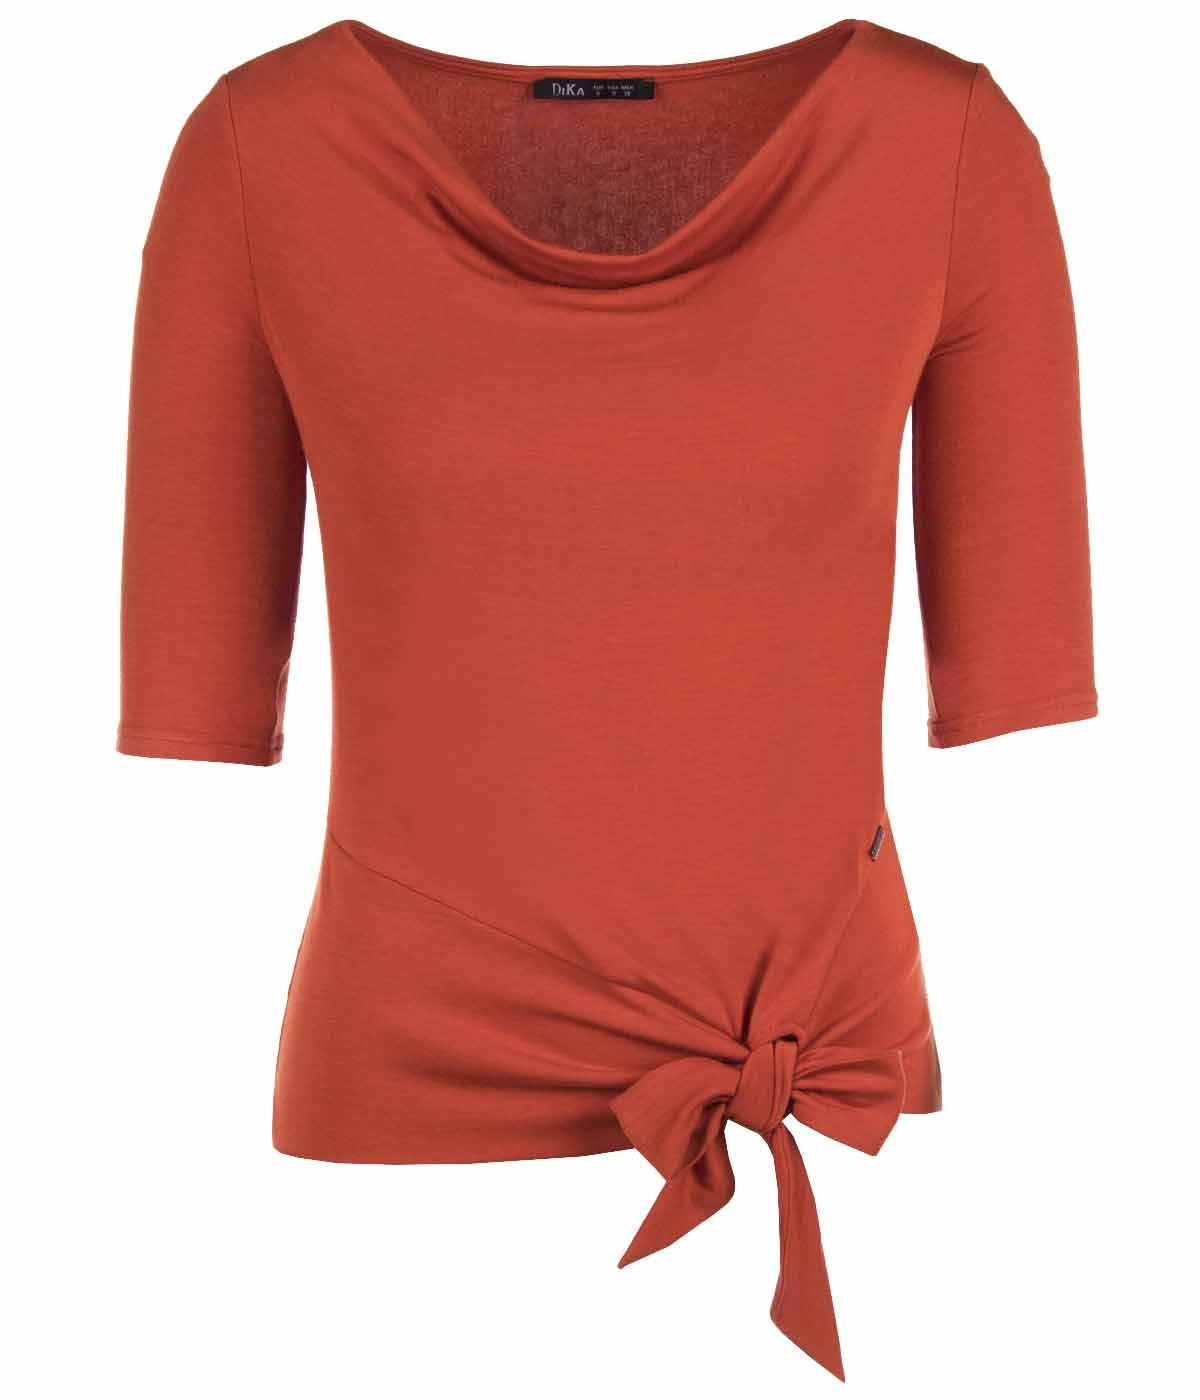 JERSEY  BLOUSE WITH ¾ SLEEVES AND FRONT TIED DETAIL 0